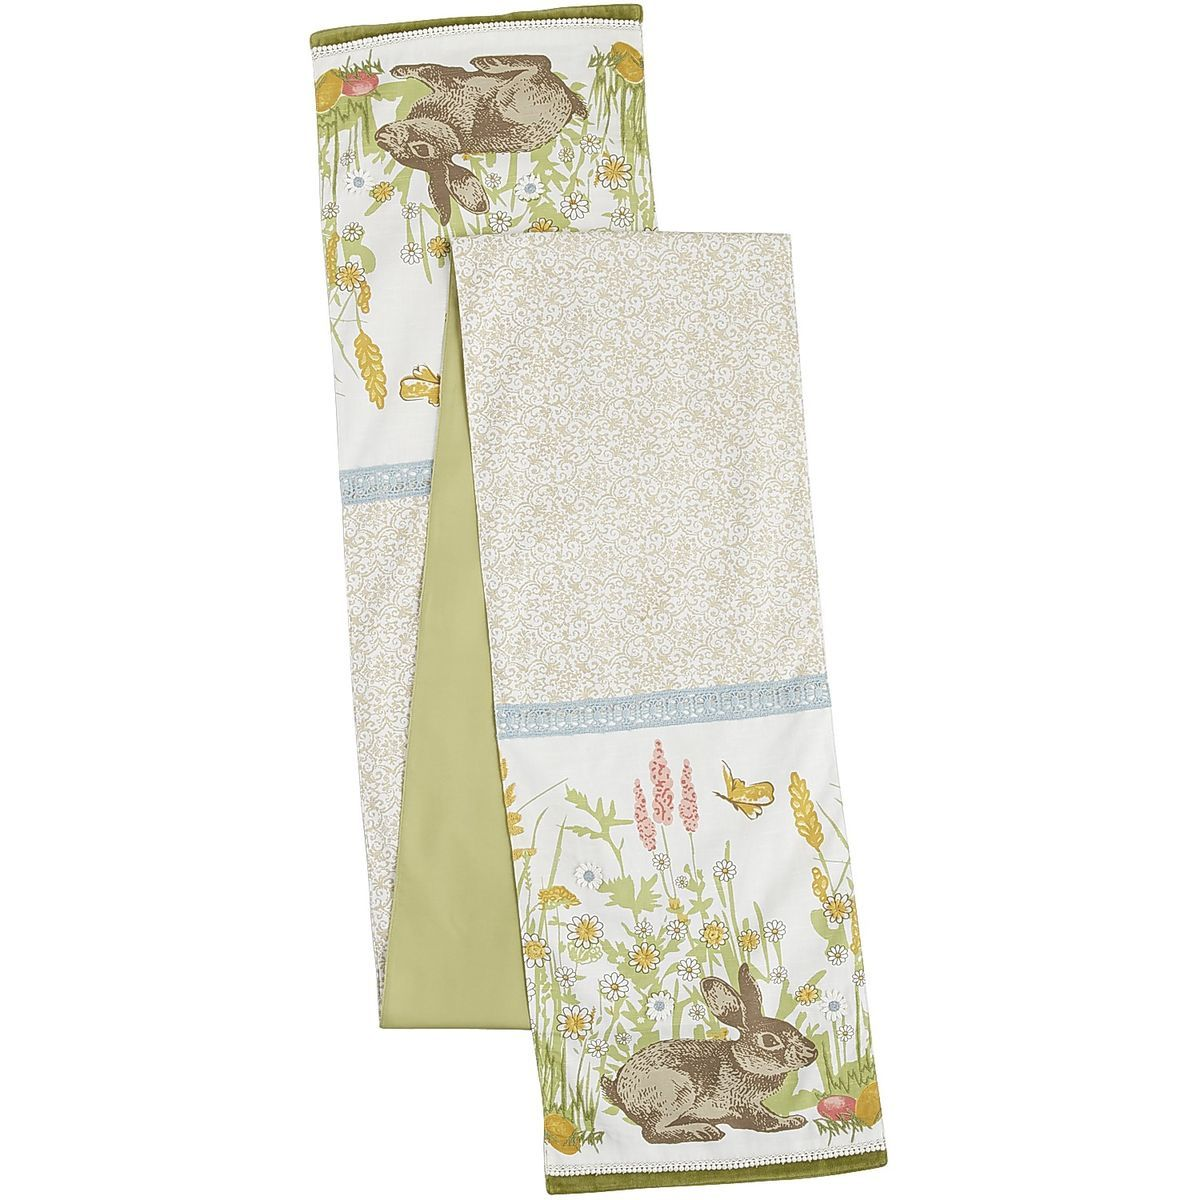 Sofie The Bunny Table Runner Pier 1 Imports